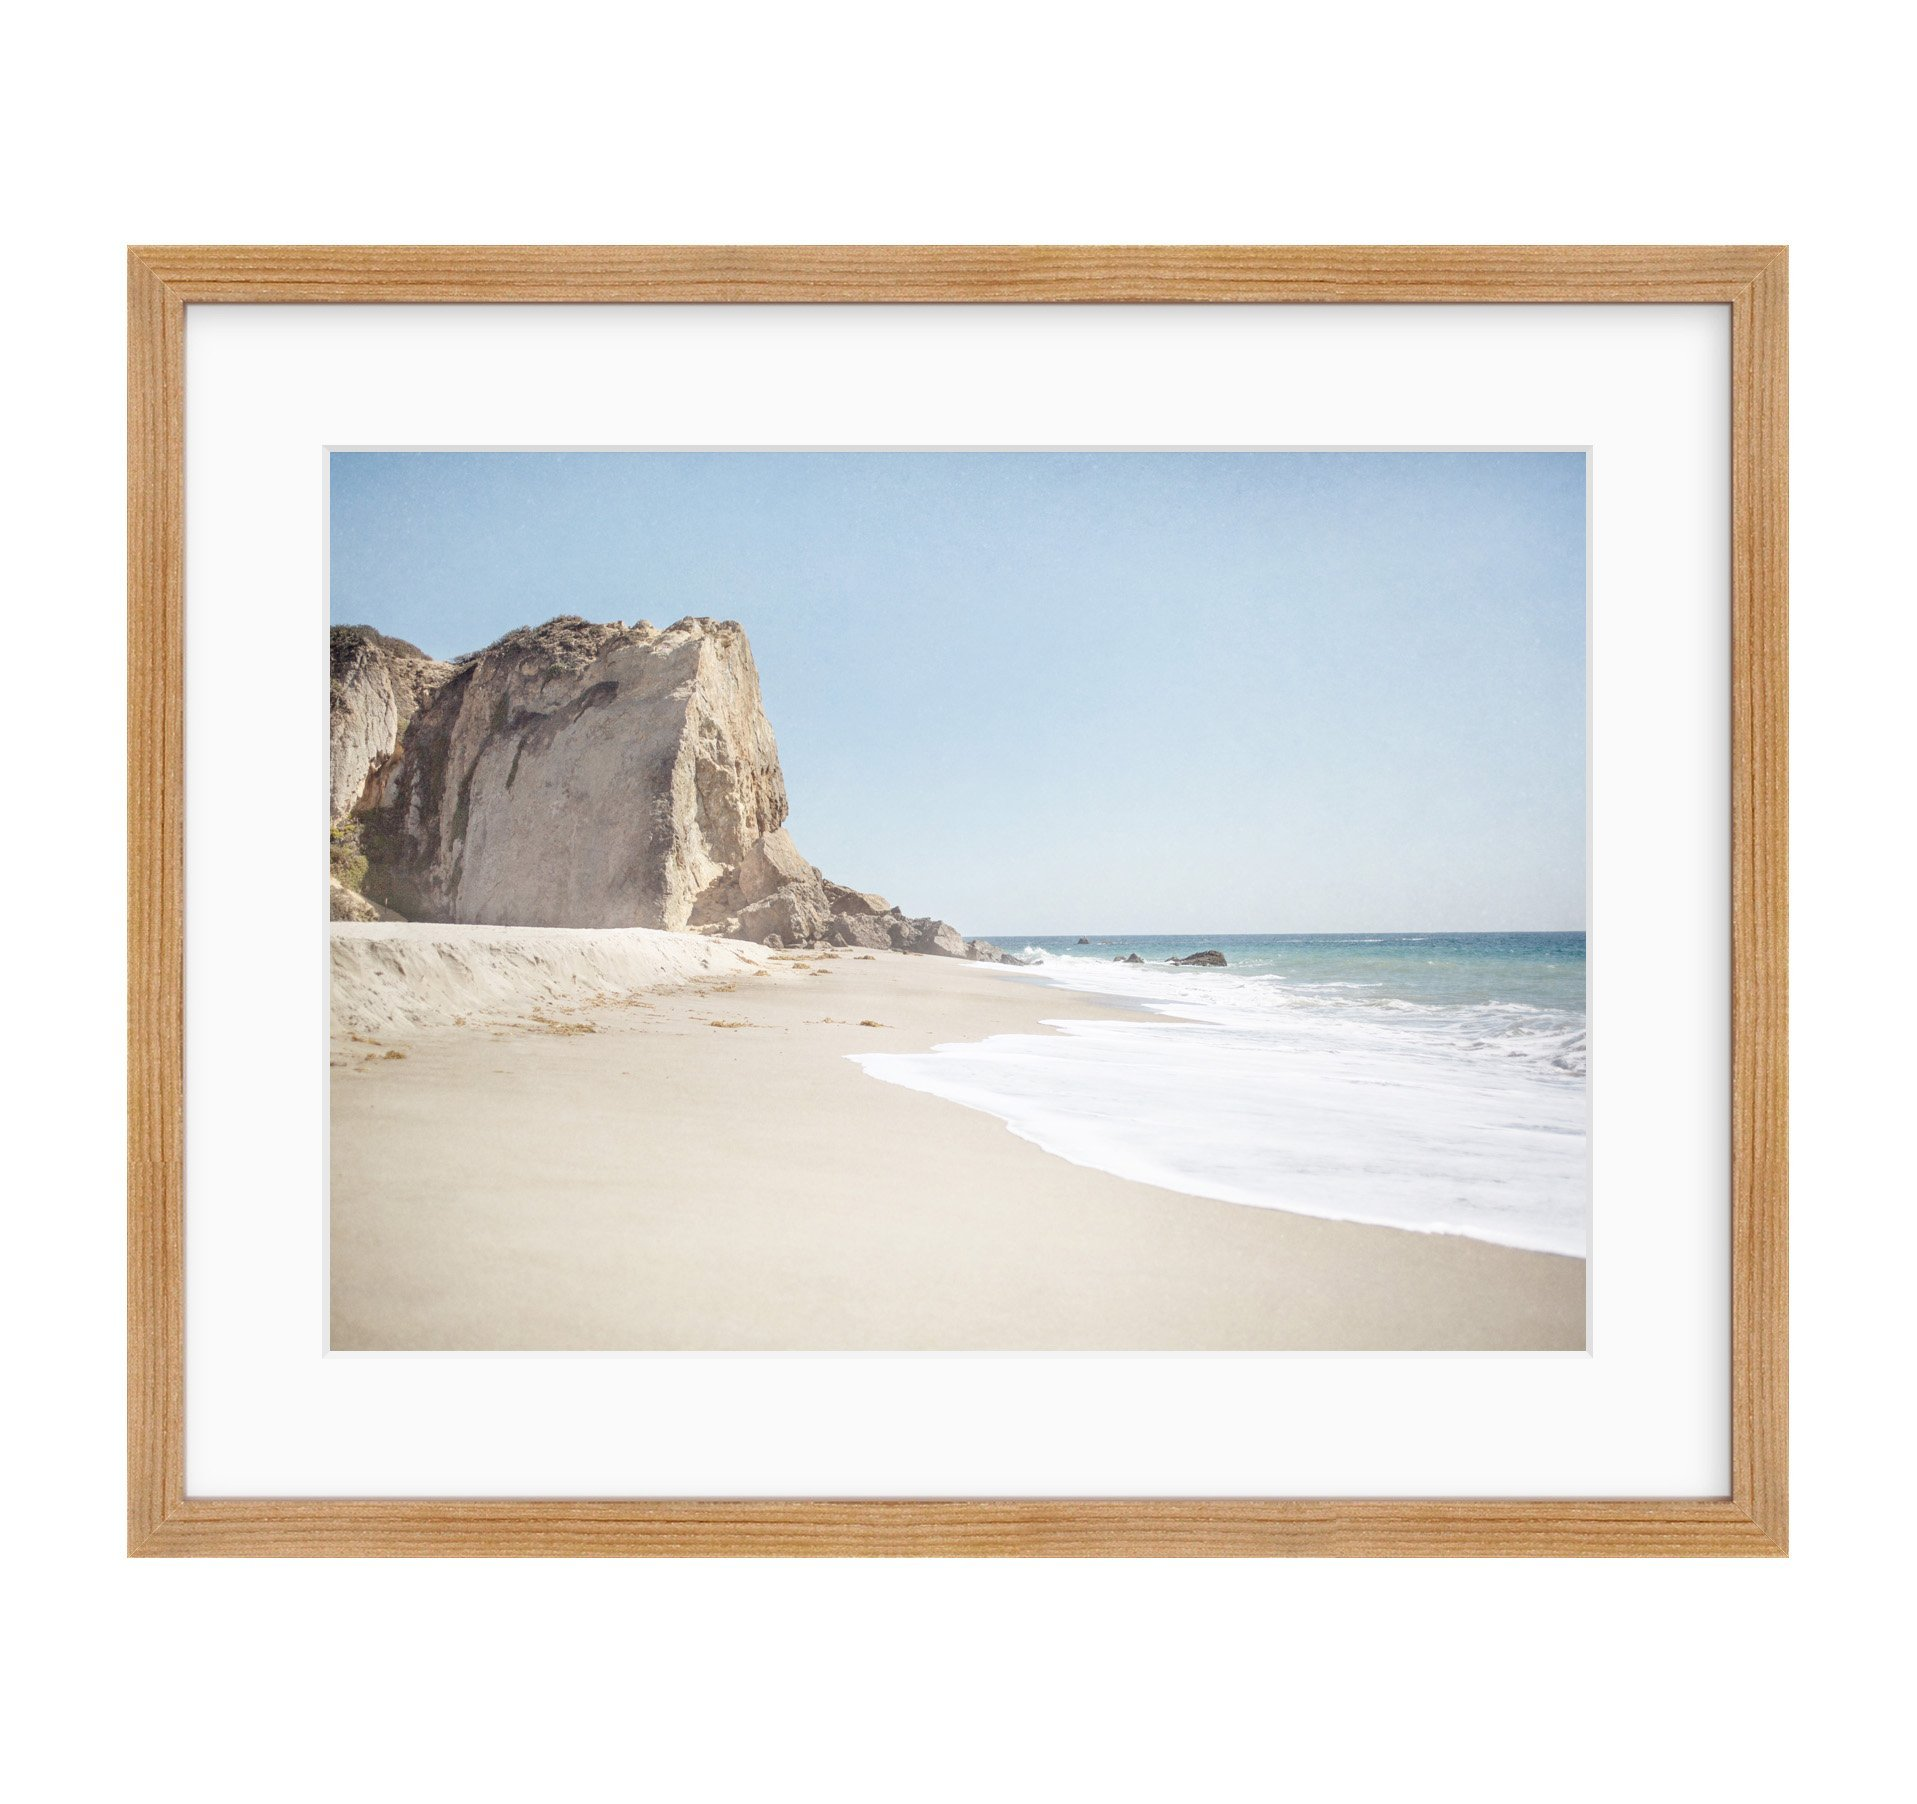 Framed Photographic Print, Malibu Wall Art, California Landscape Beach Picture, Coastal Seascape Decor, Point Dume'